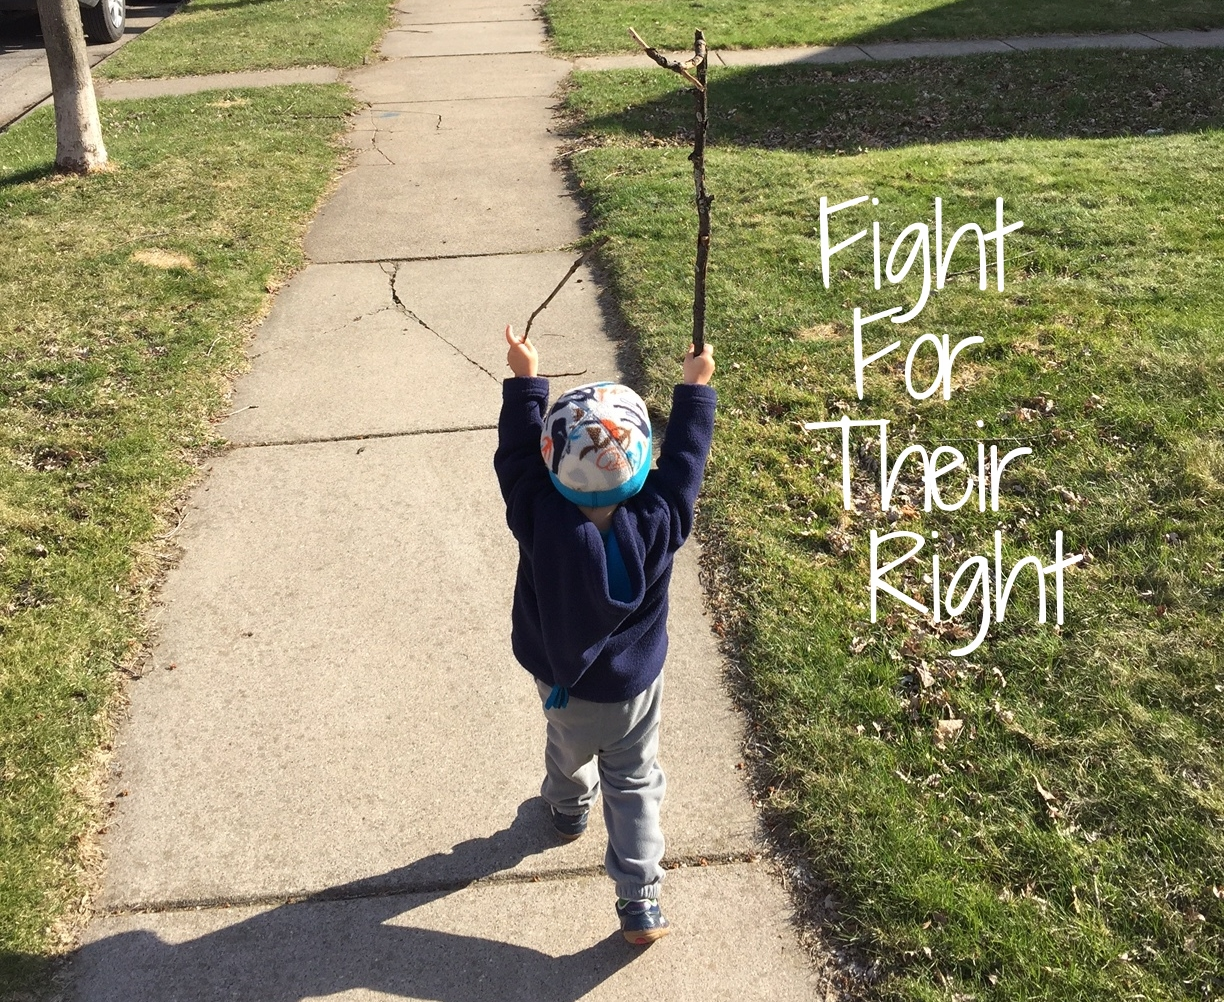 Fight For Their Right